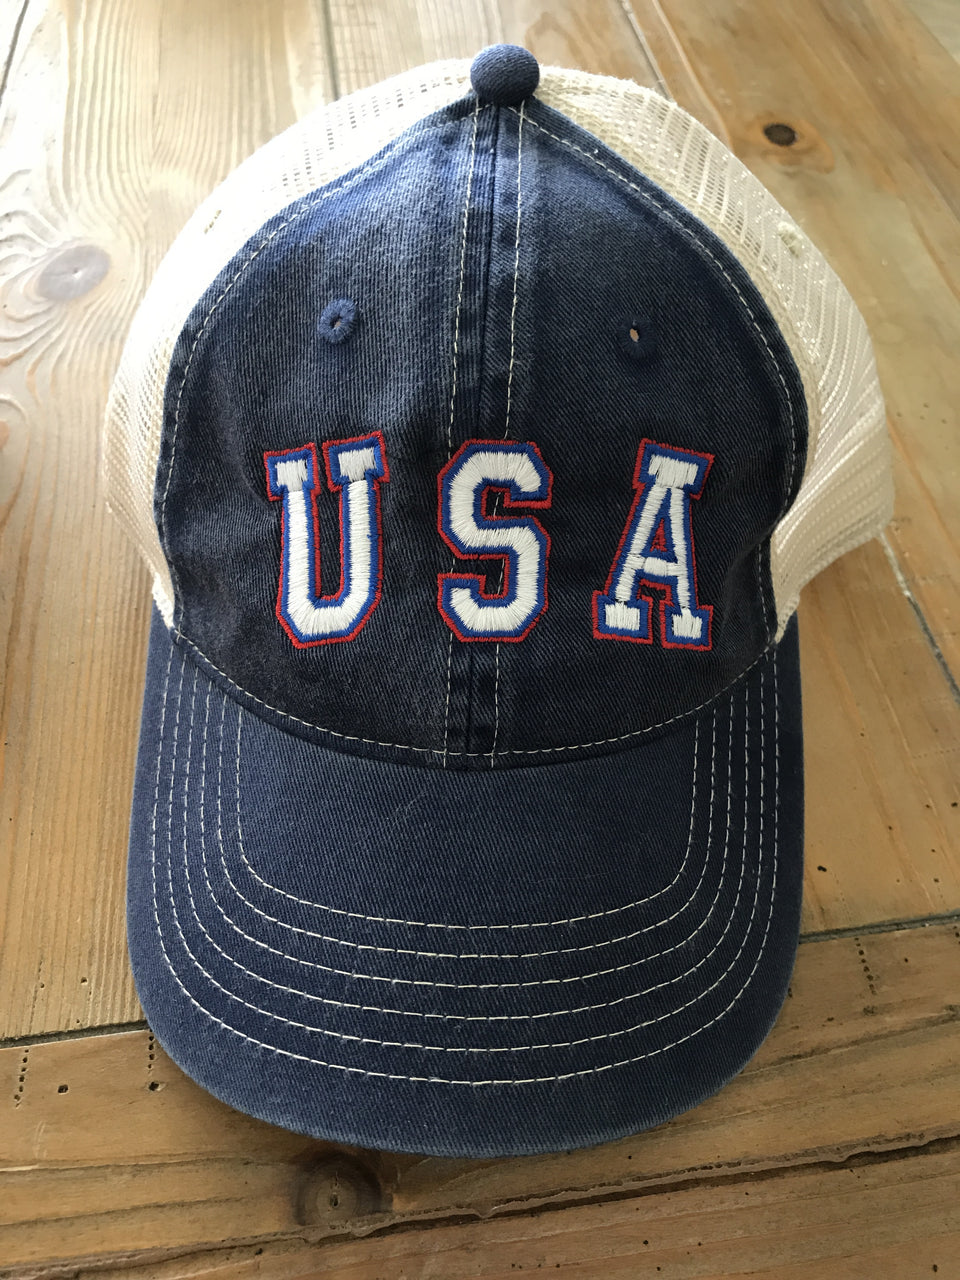 USA Trucker Patriotic Fourth of July Hat Snap back